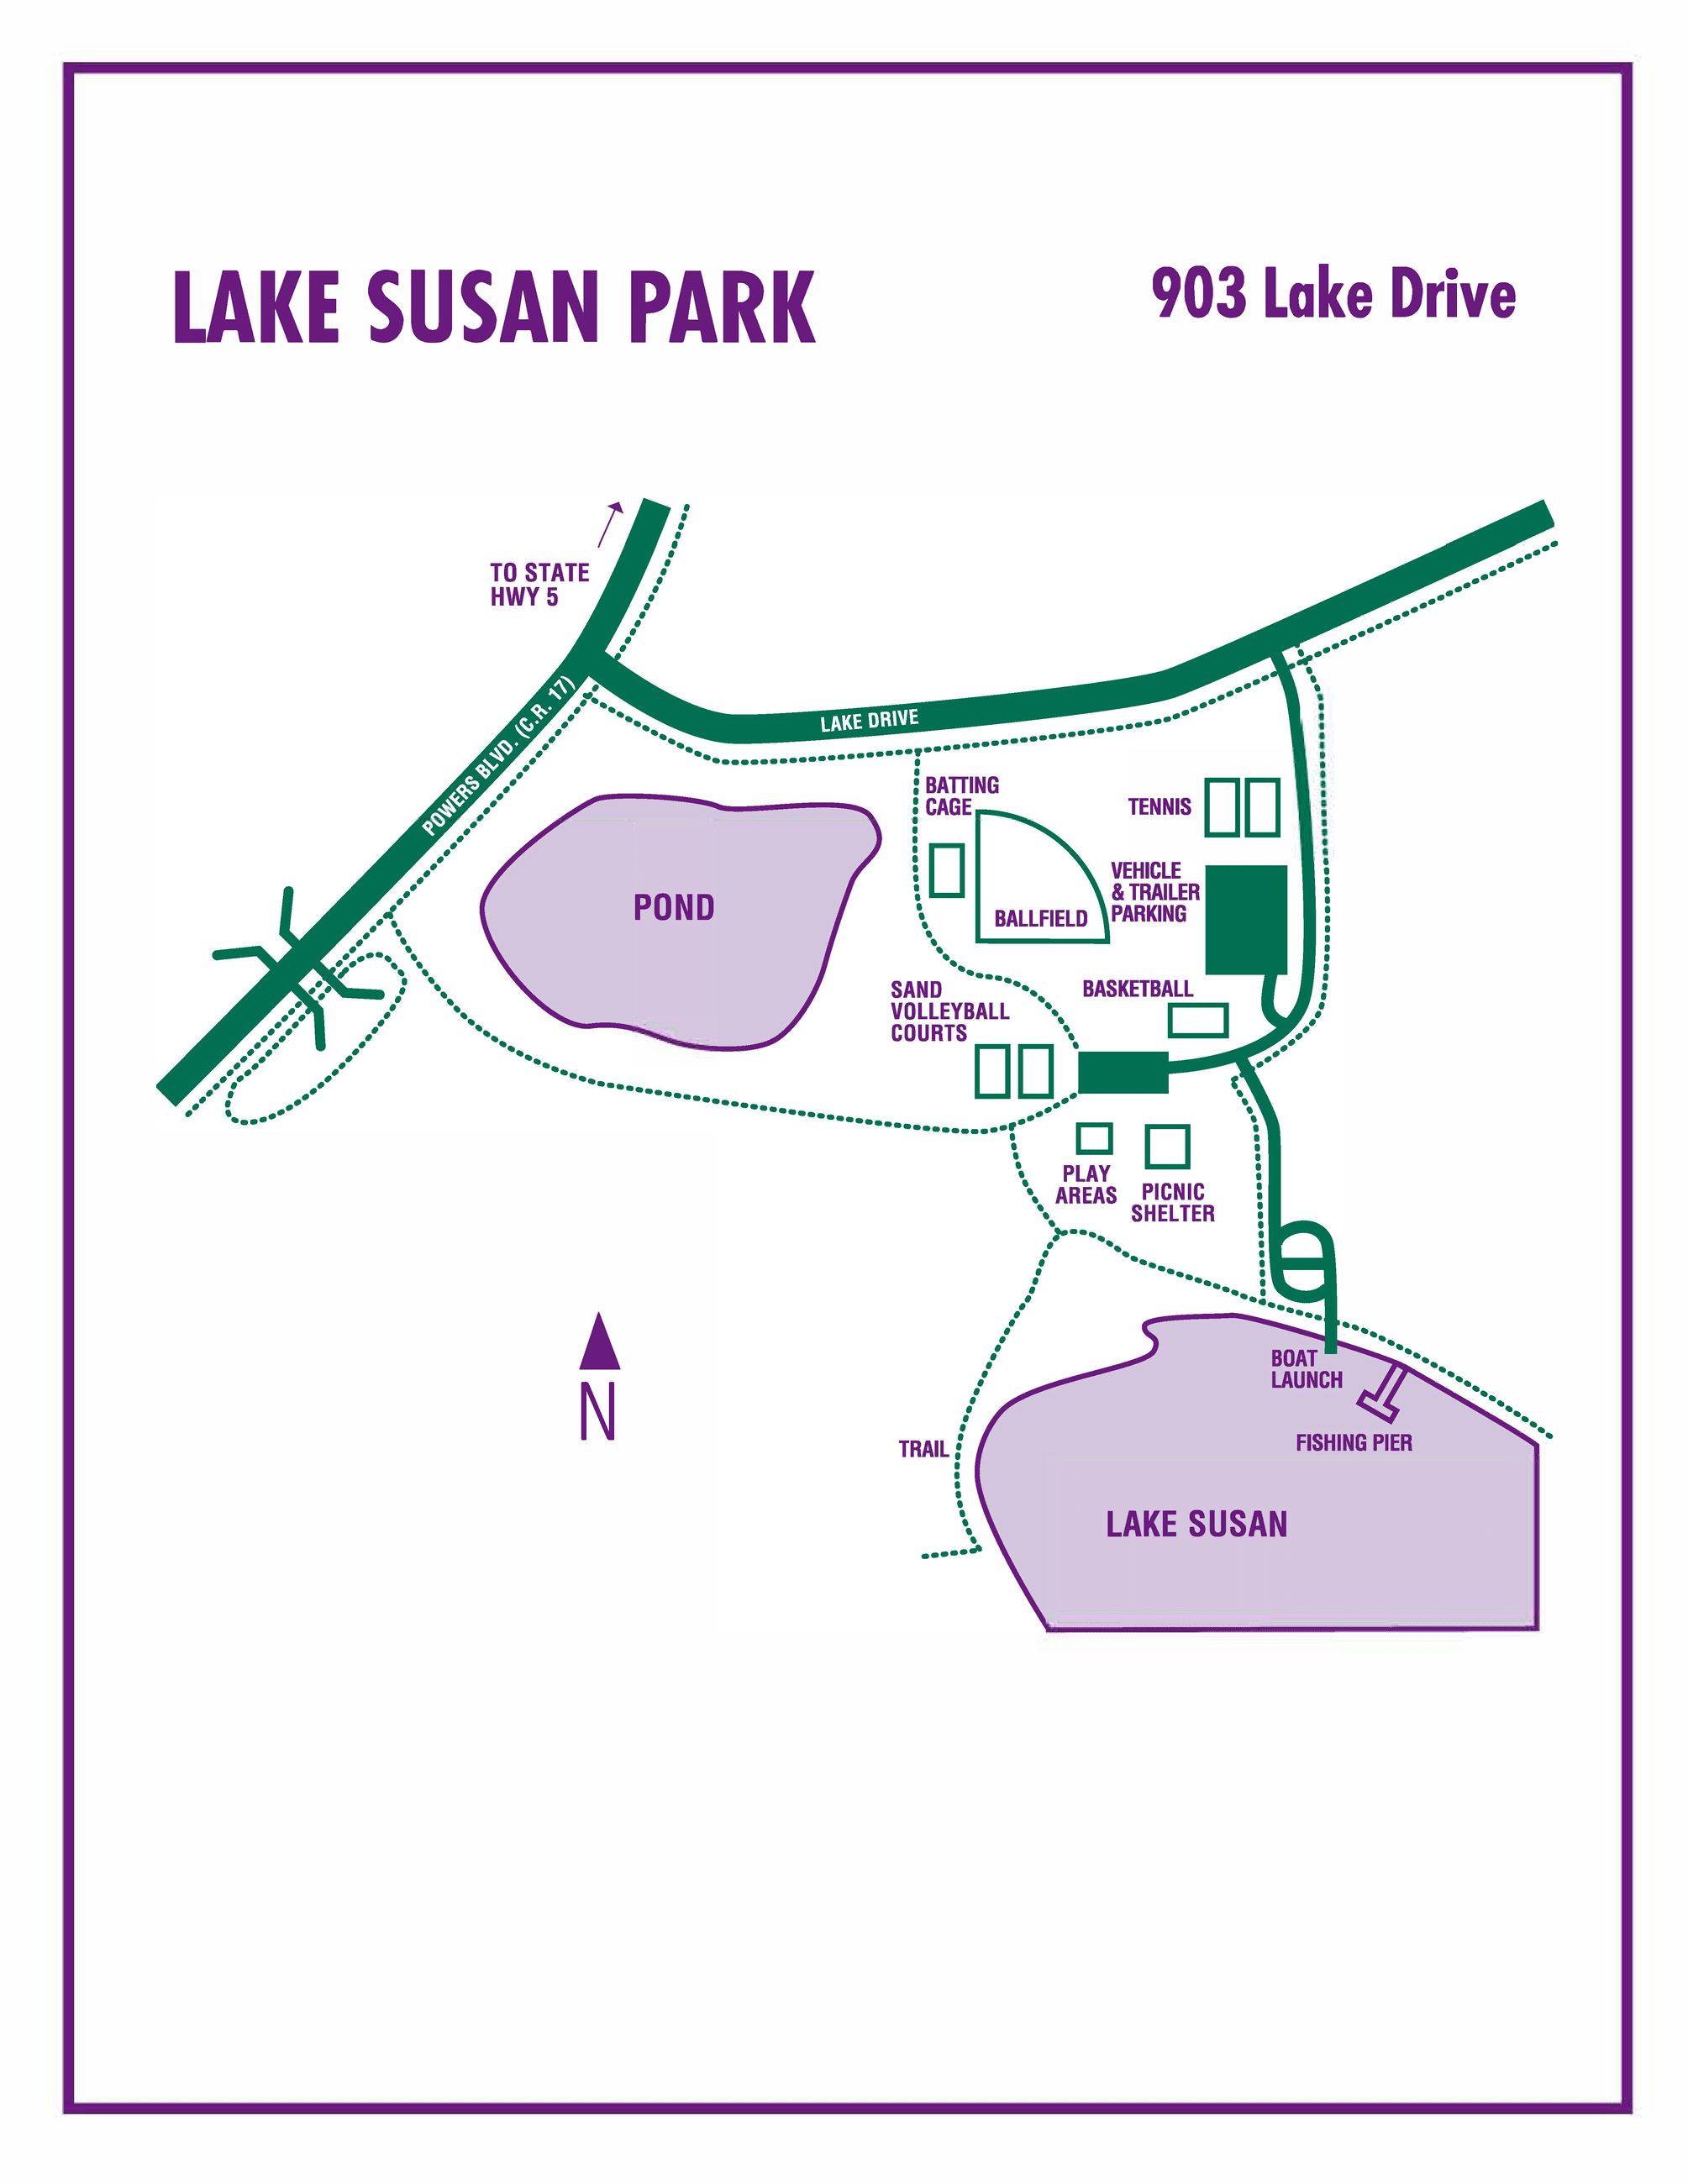 Lake Susan Park Map